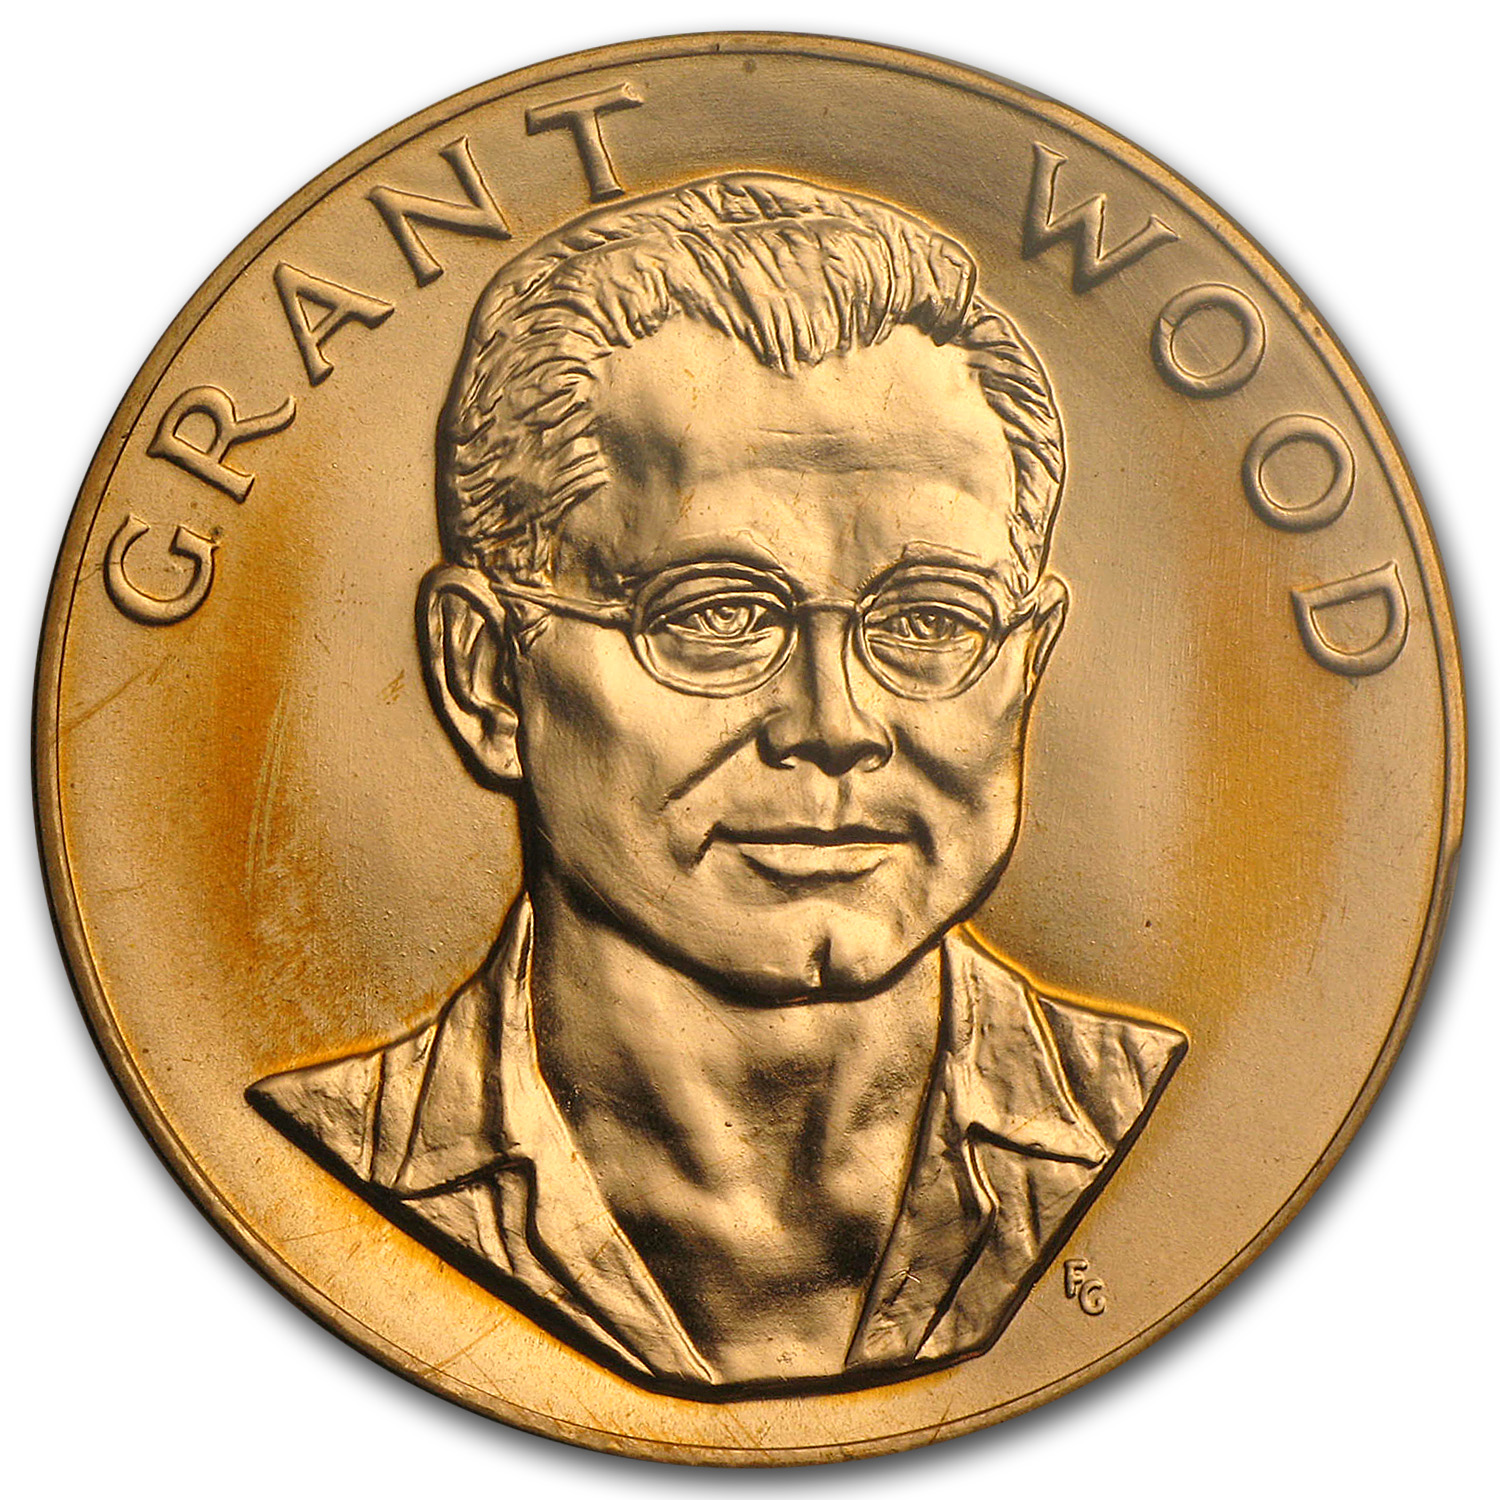 U.S. Mint 1 oz Gold Commem Arts Medal Grant Wood MS-65 PCGS